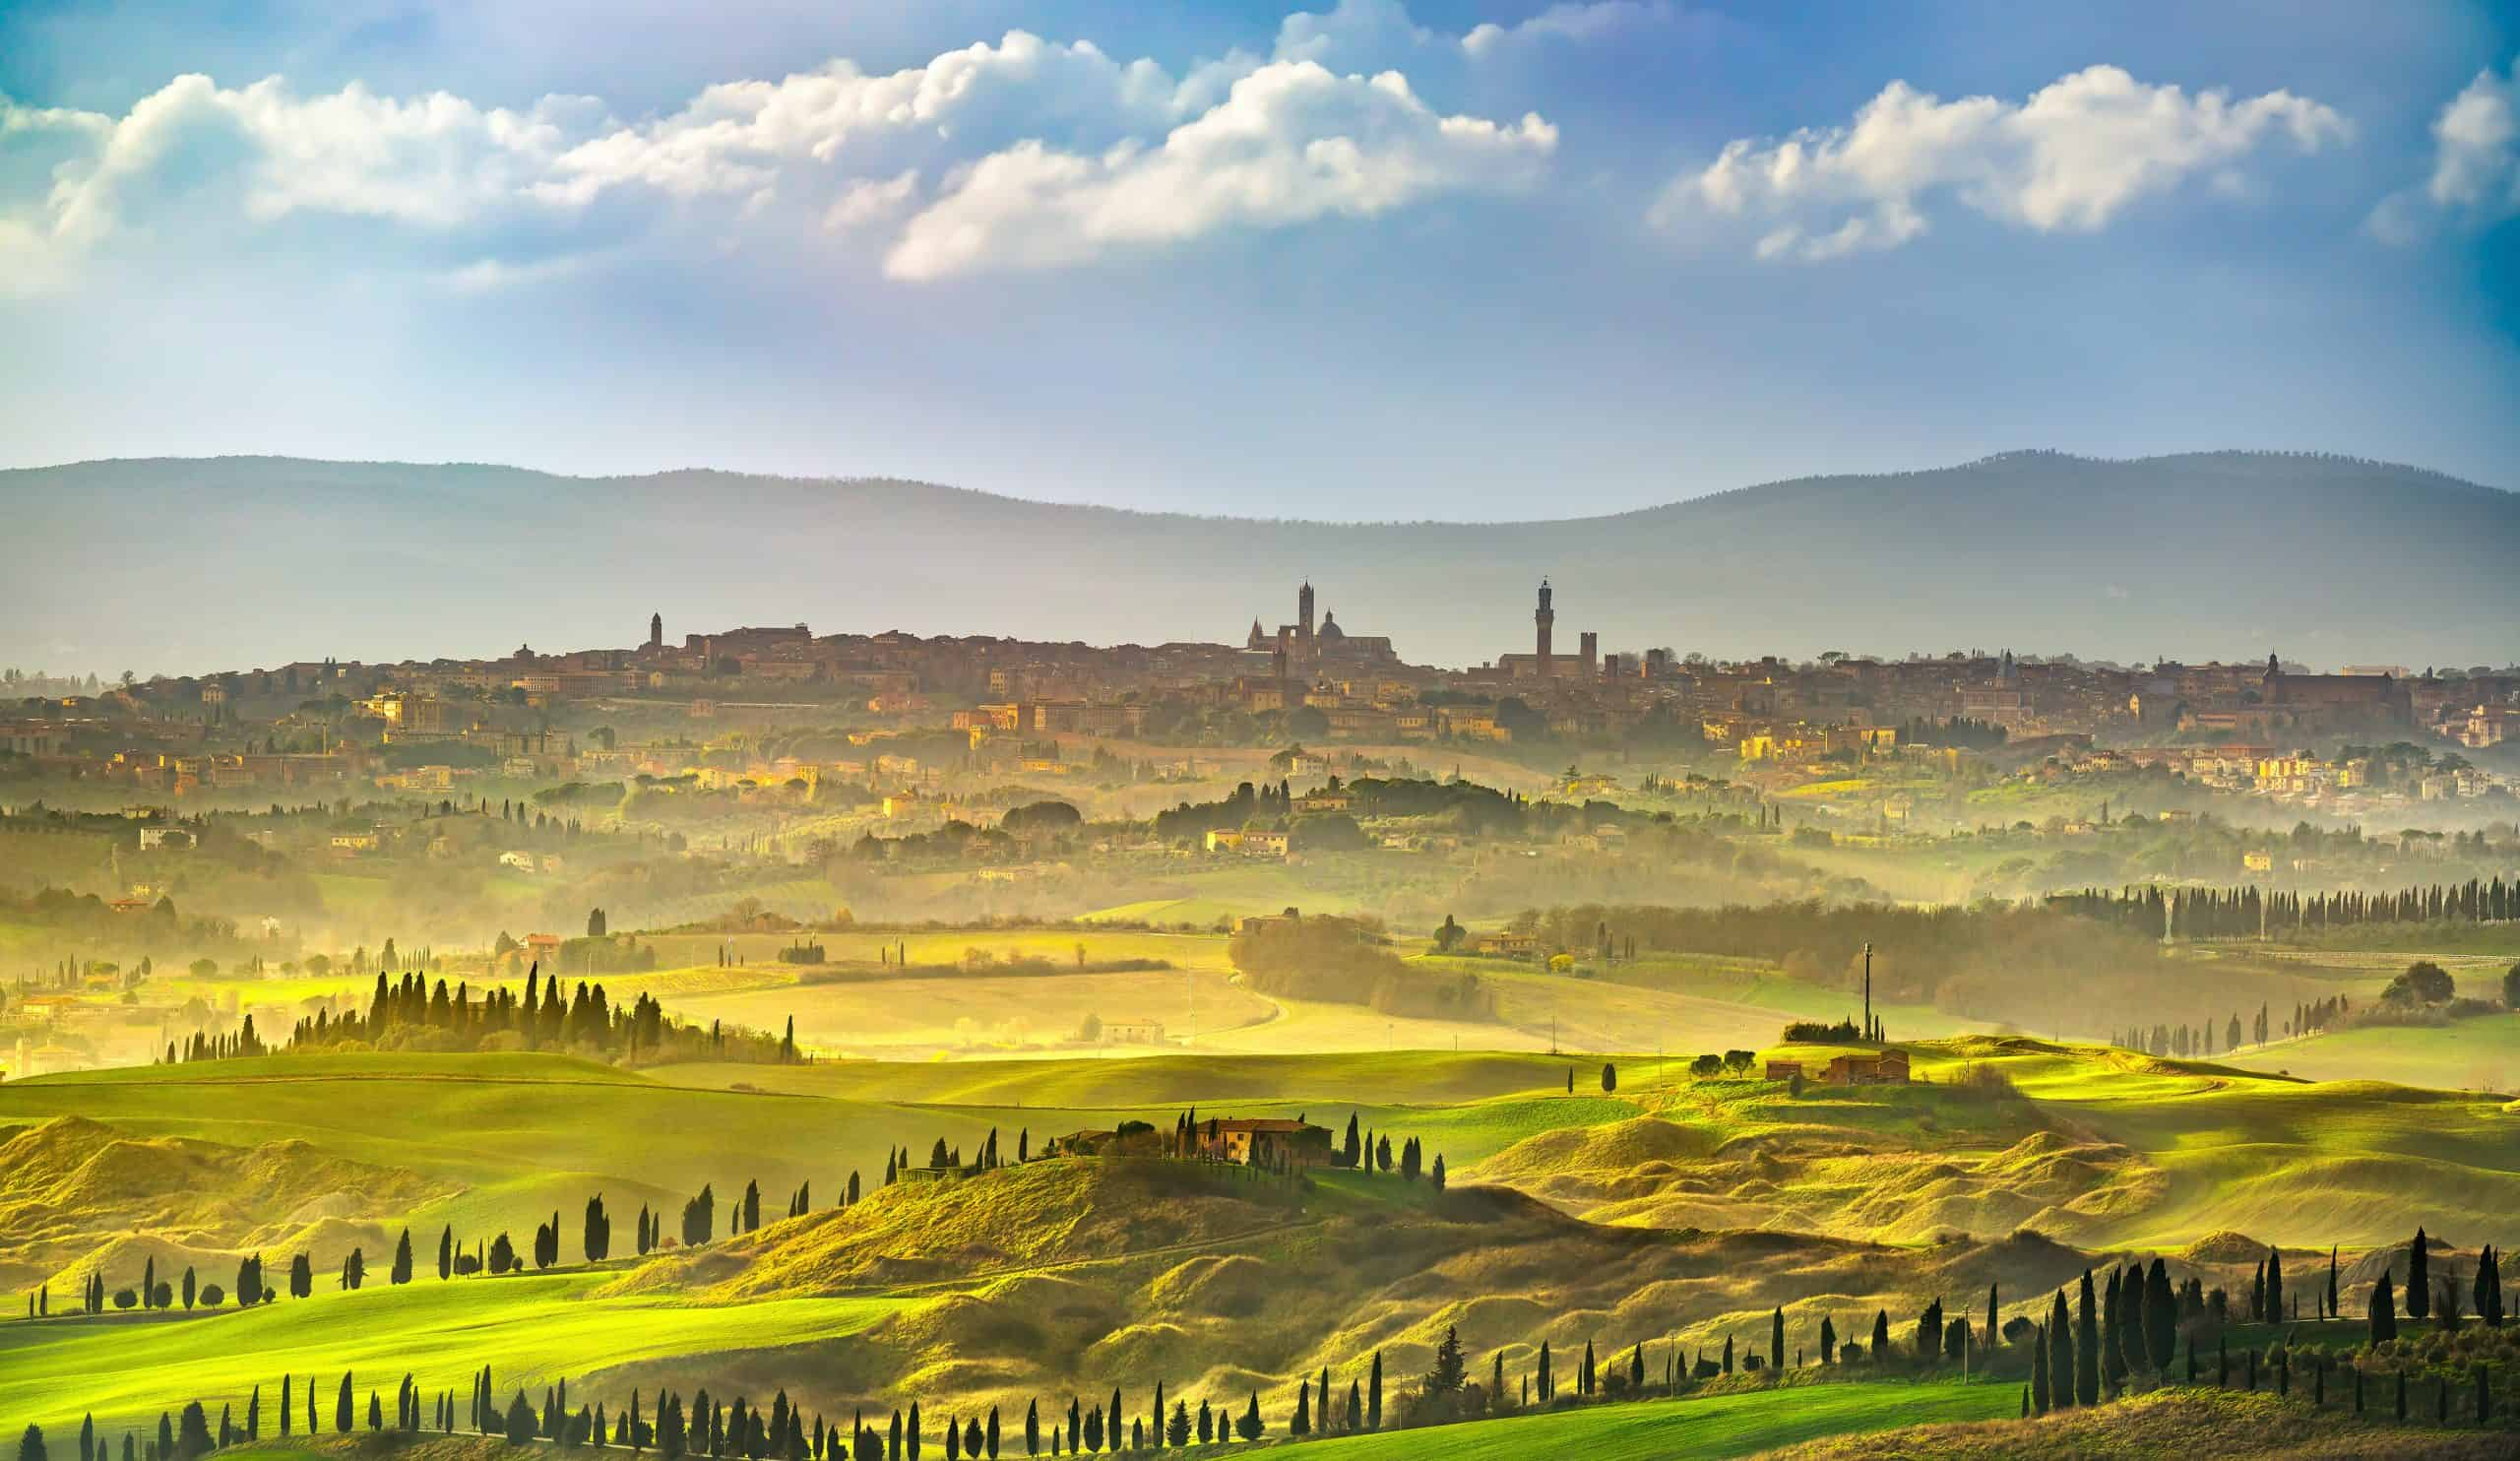 Panorama of beautiful town in Tuscany, Italy with Tuscan countryside in foreground